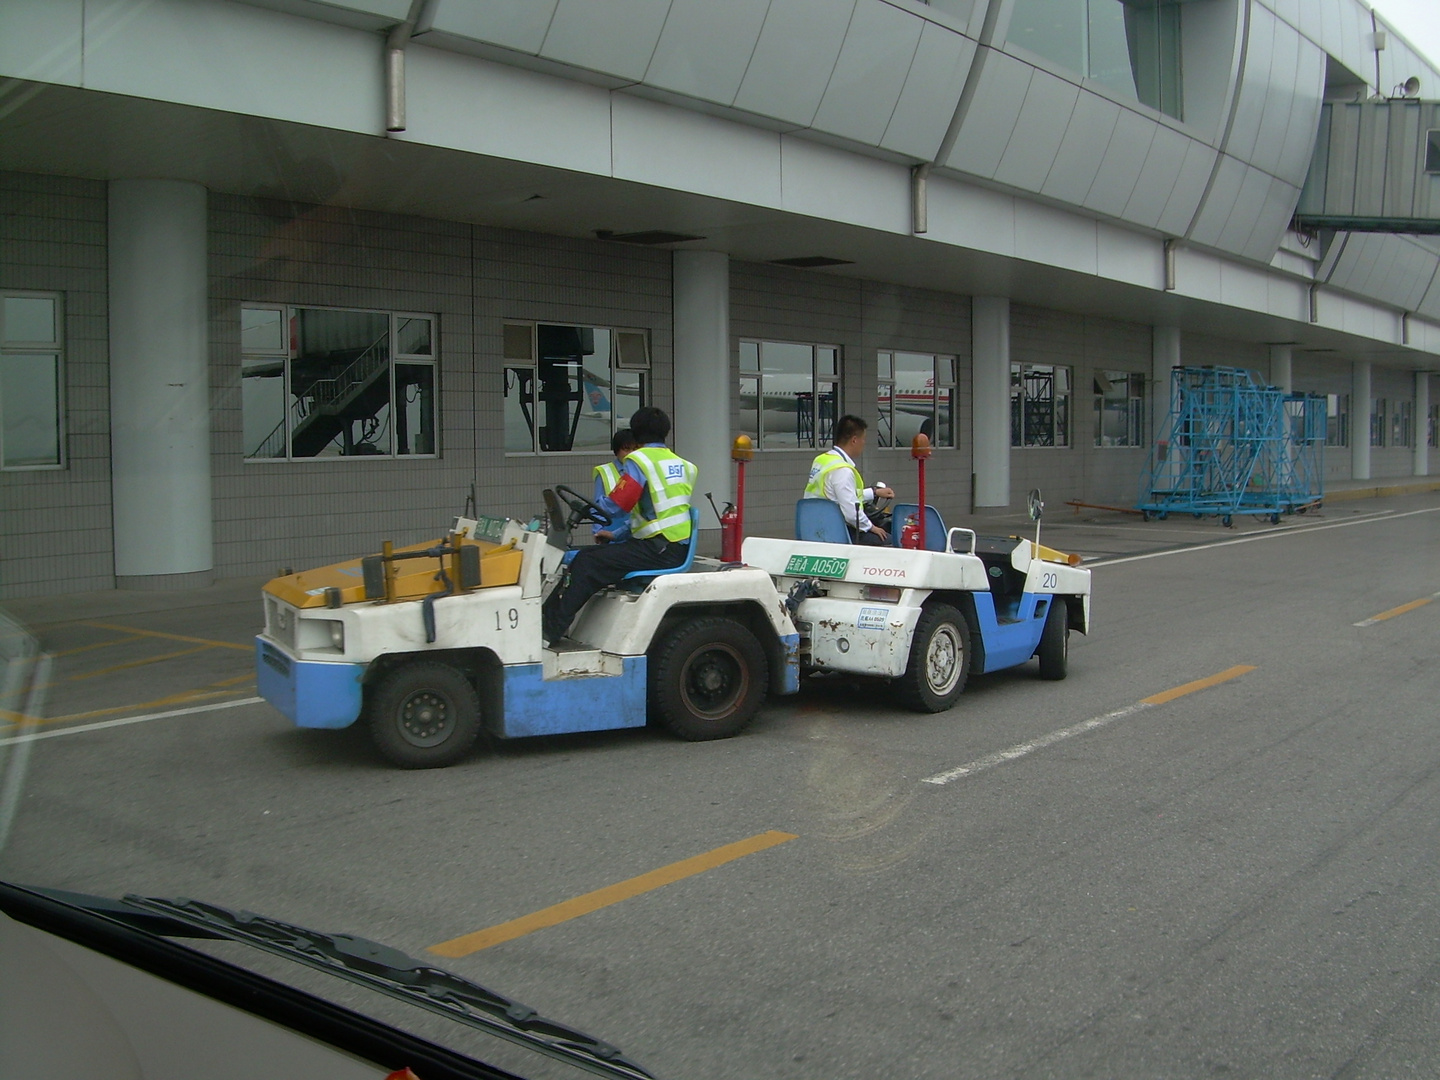 baggage tow tractor towing in Beijing Airport summer 2008